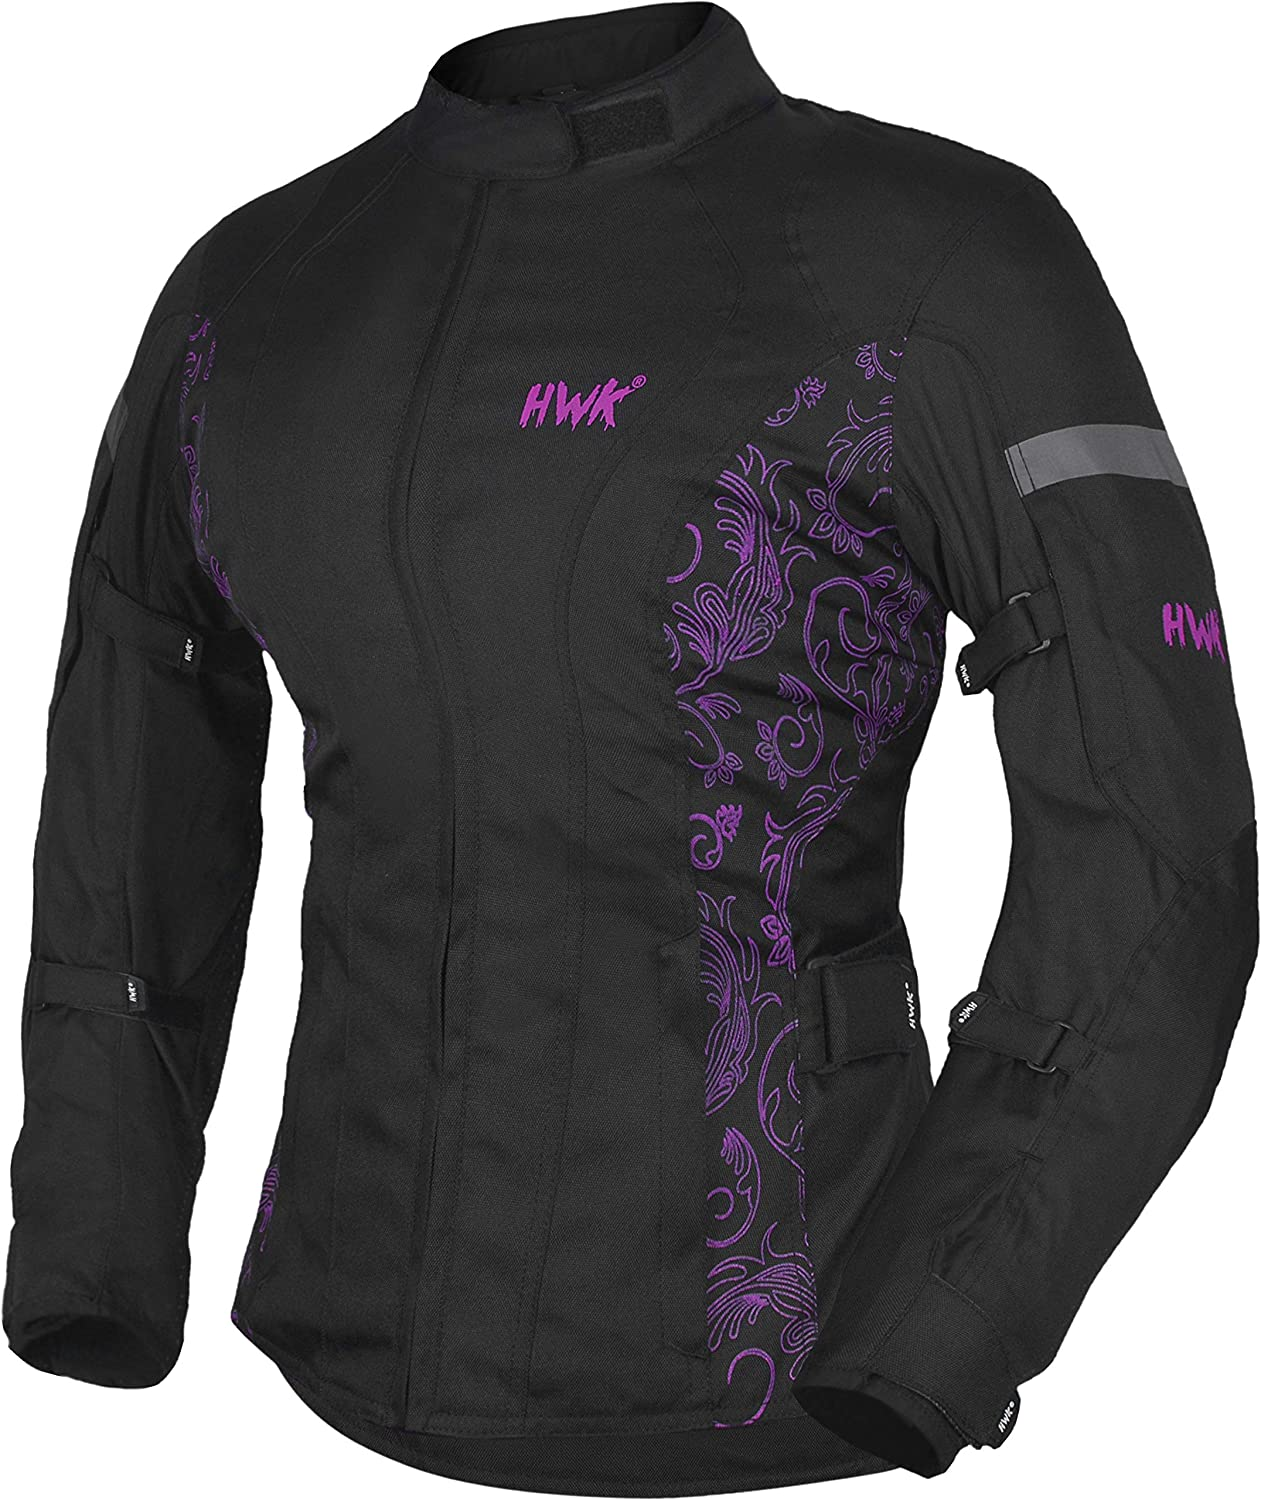 HWK Womens Motorcycle Jacket For Women Rain Waterproof Moto Riding Ladies Motorbike Jackets CE Armored (Black/Pink, XX-Large)